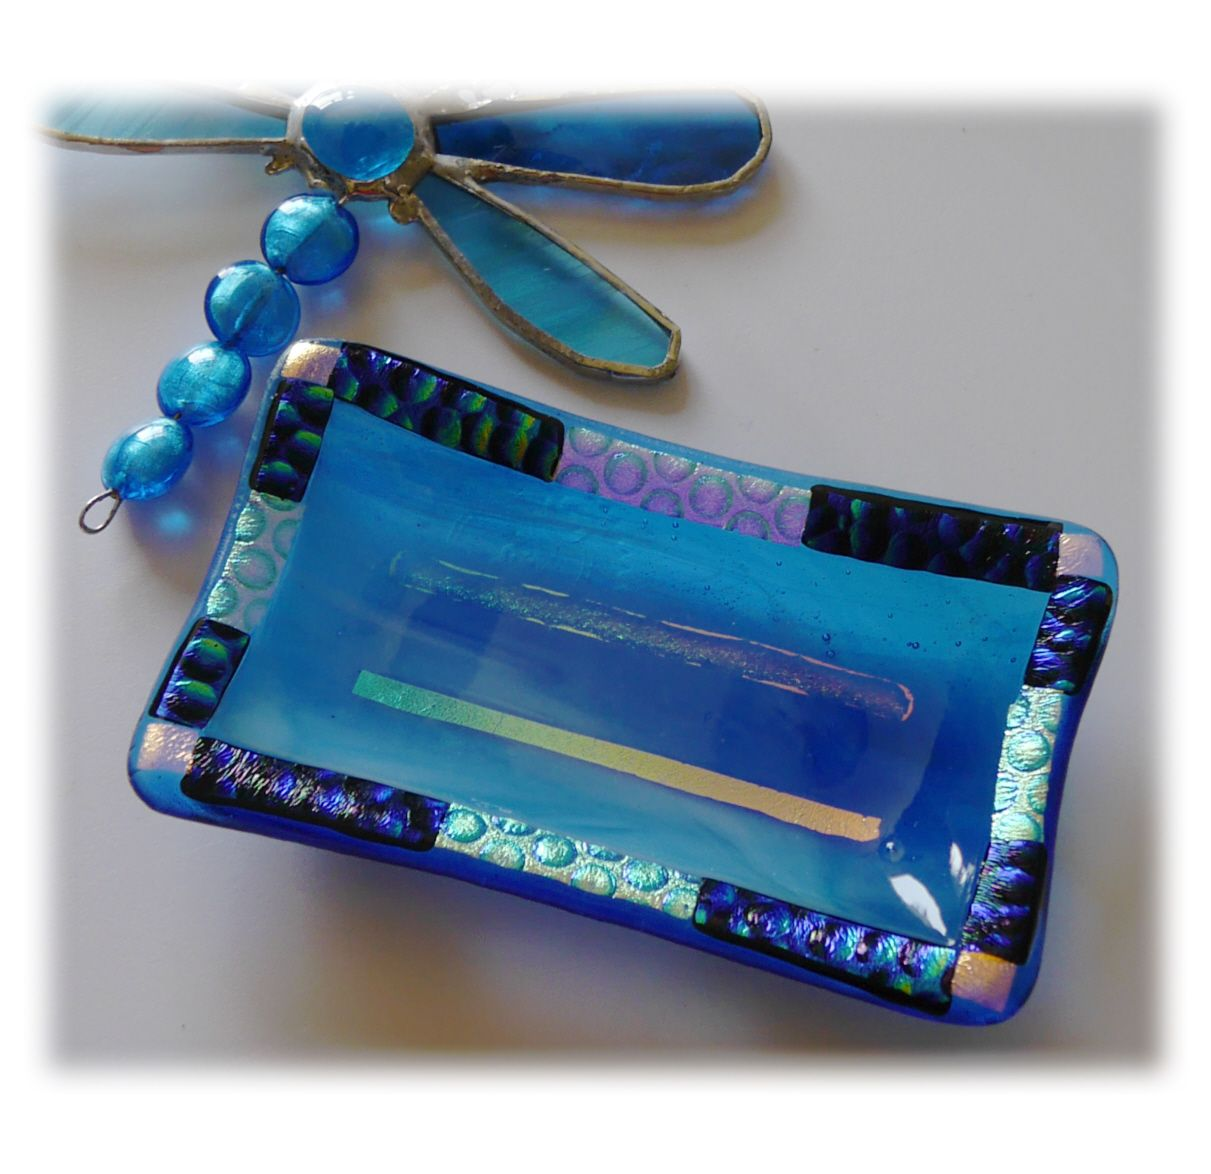 Soap Dish 014 Turquoise dichroic #1908 FREE 13.50